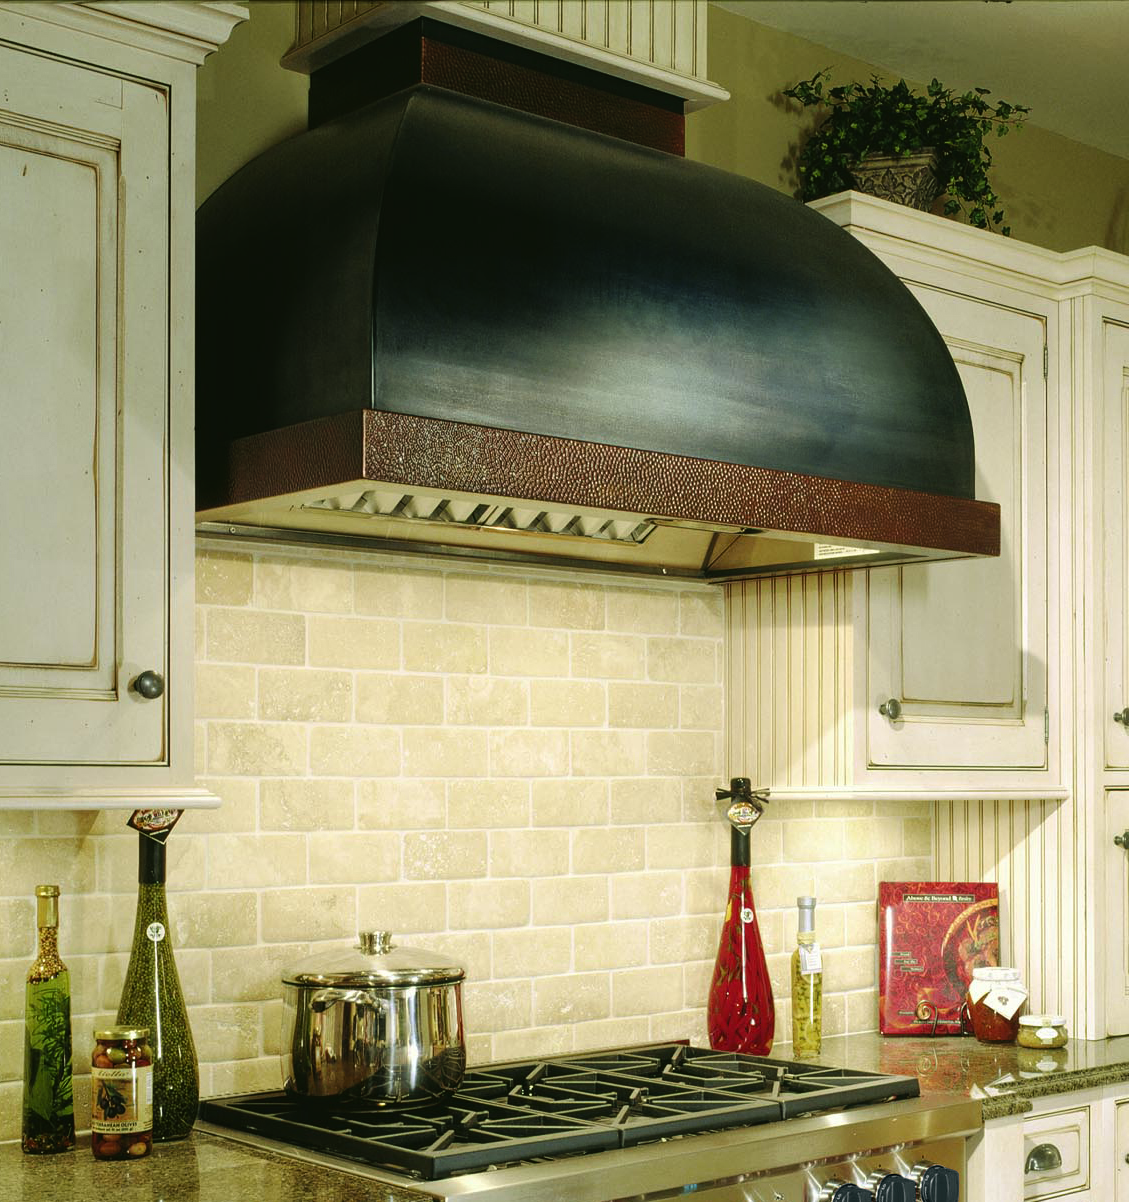 Let Your Kitchen Hood Vent Introducing Luxury Designs And Customizable Style